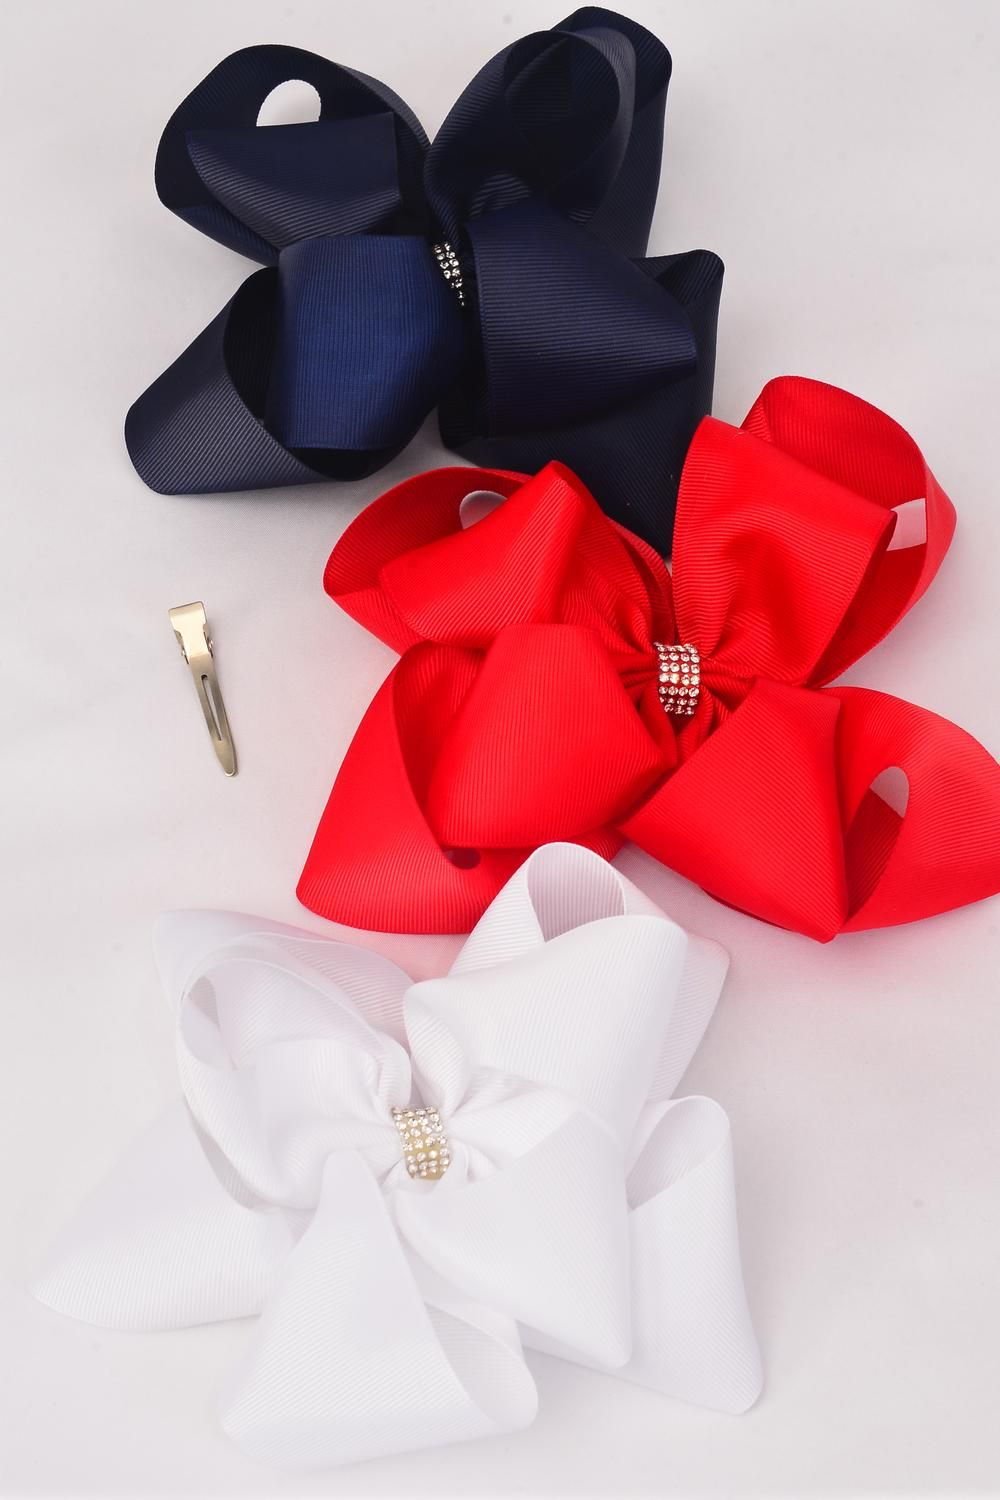 "Hair Bow Jumbo Windmill Cheer Bow Type Center Clear Stones Double Layered Red White Navy Grosgrain Bow-tie/DZ **Alligator Clip** Size-7""x 7"" Wide,4 of each Color Mix,Clip Strip & UPC Code"